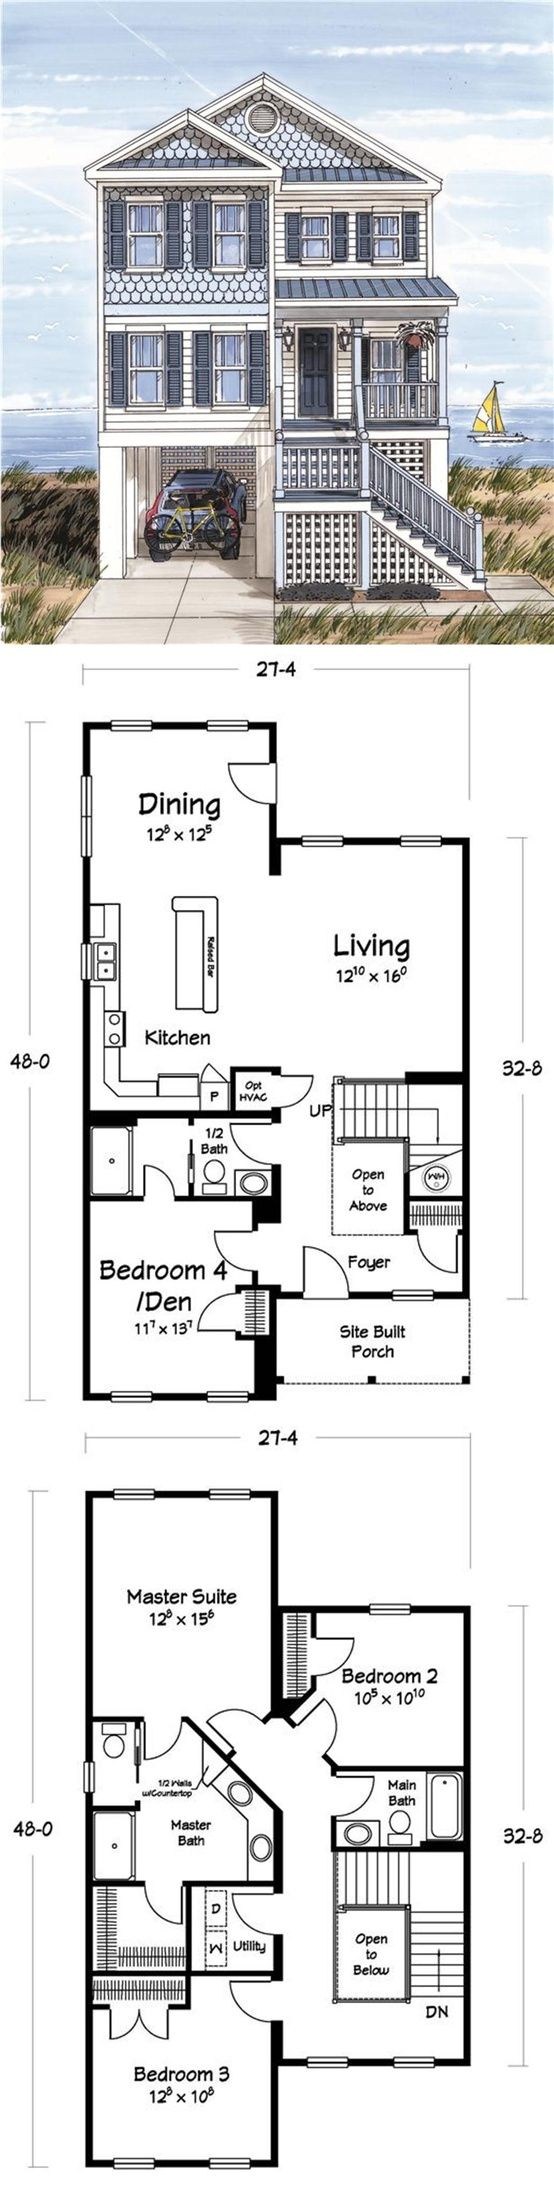 17 best images about house plans 1 on